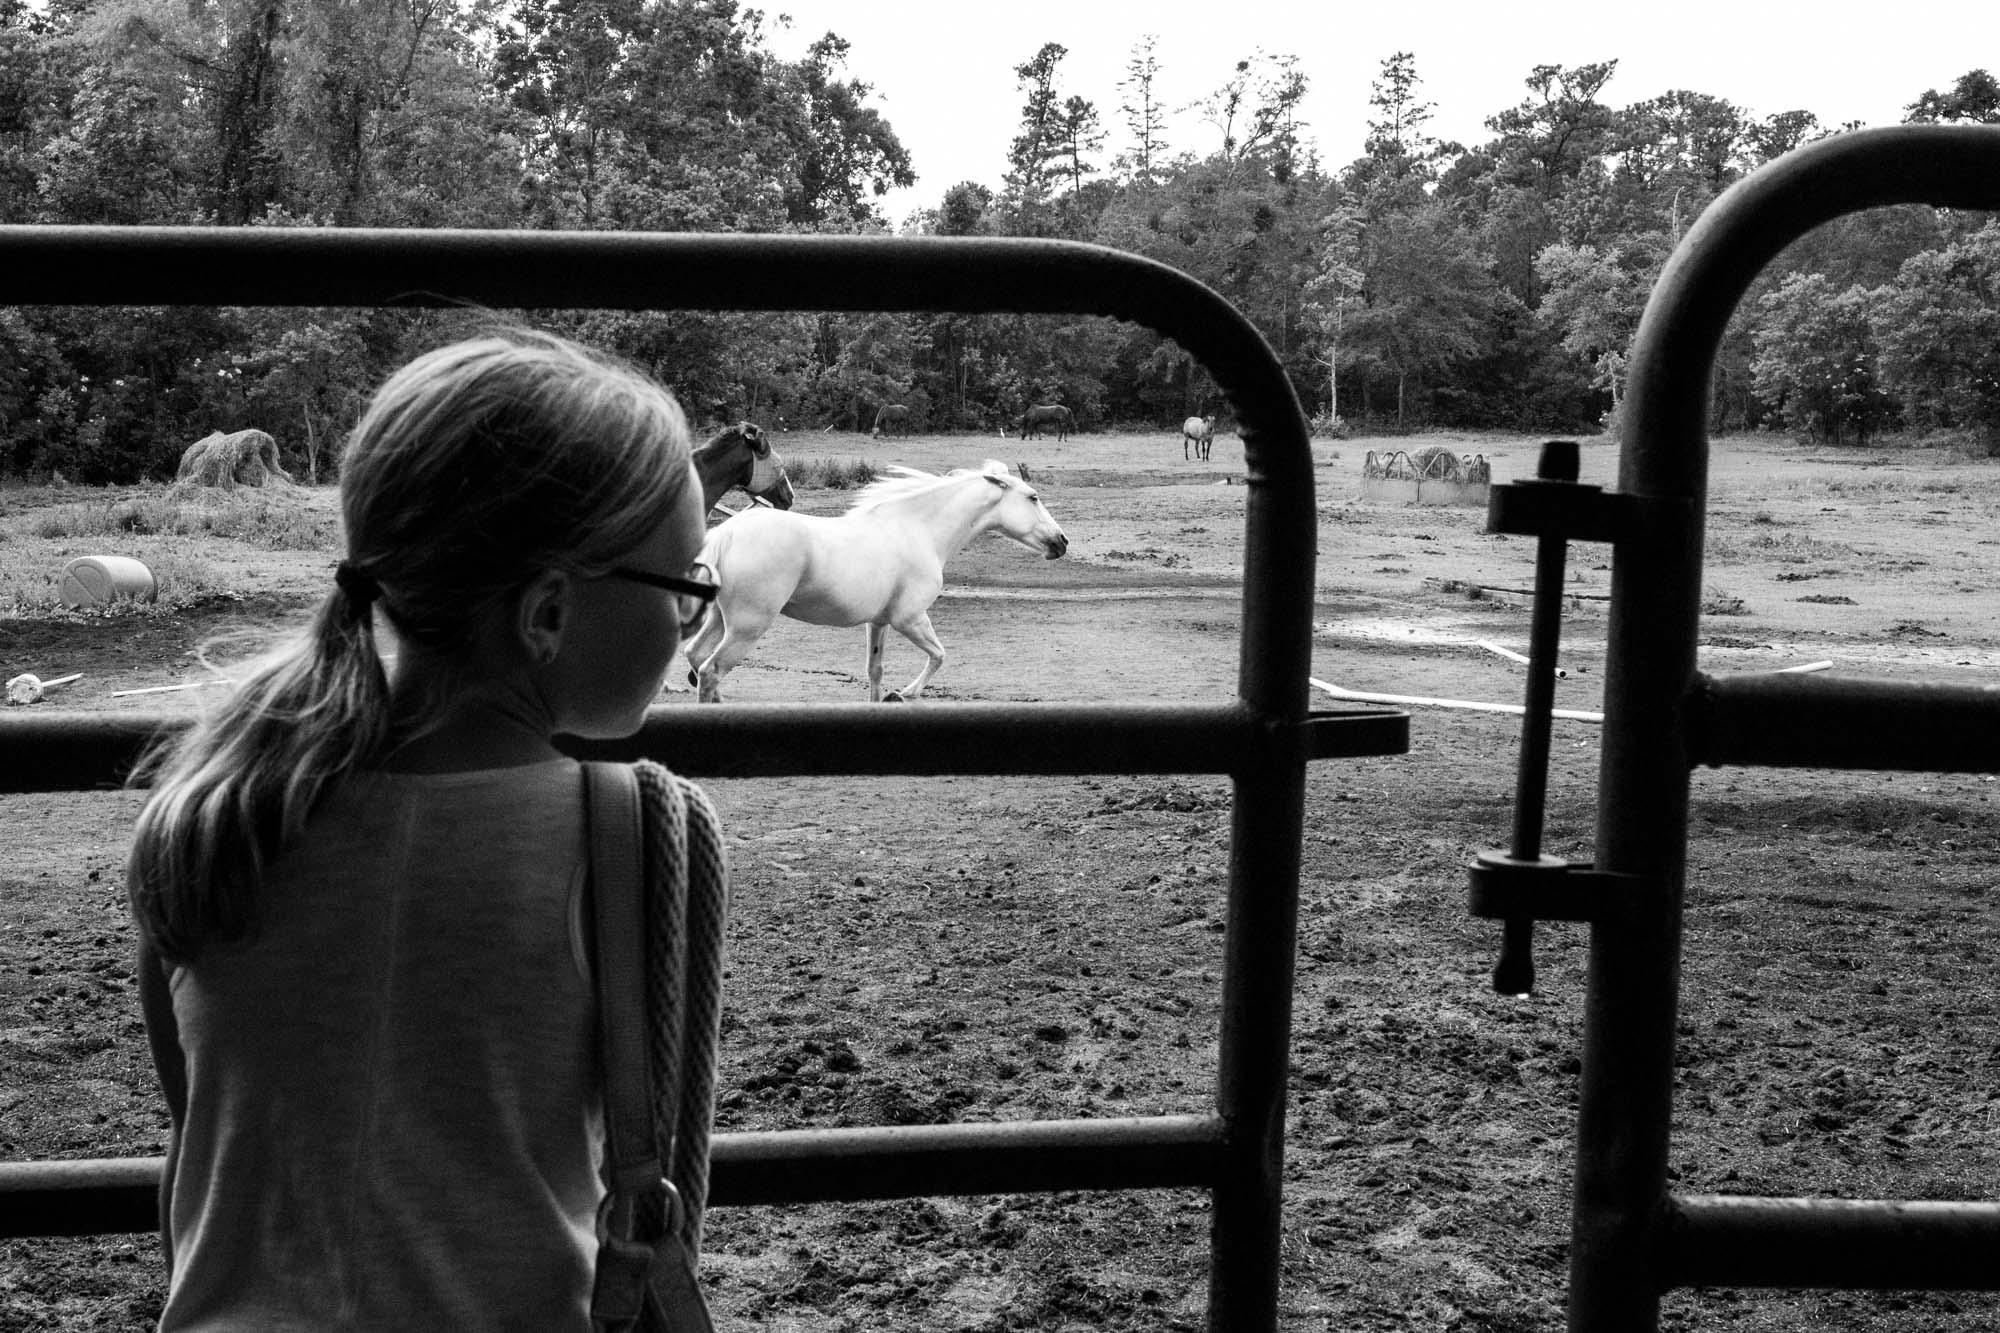 girl watching her horse ride away